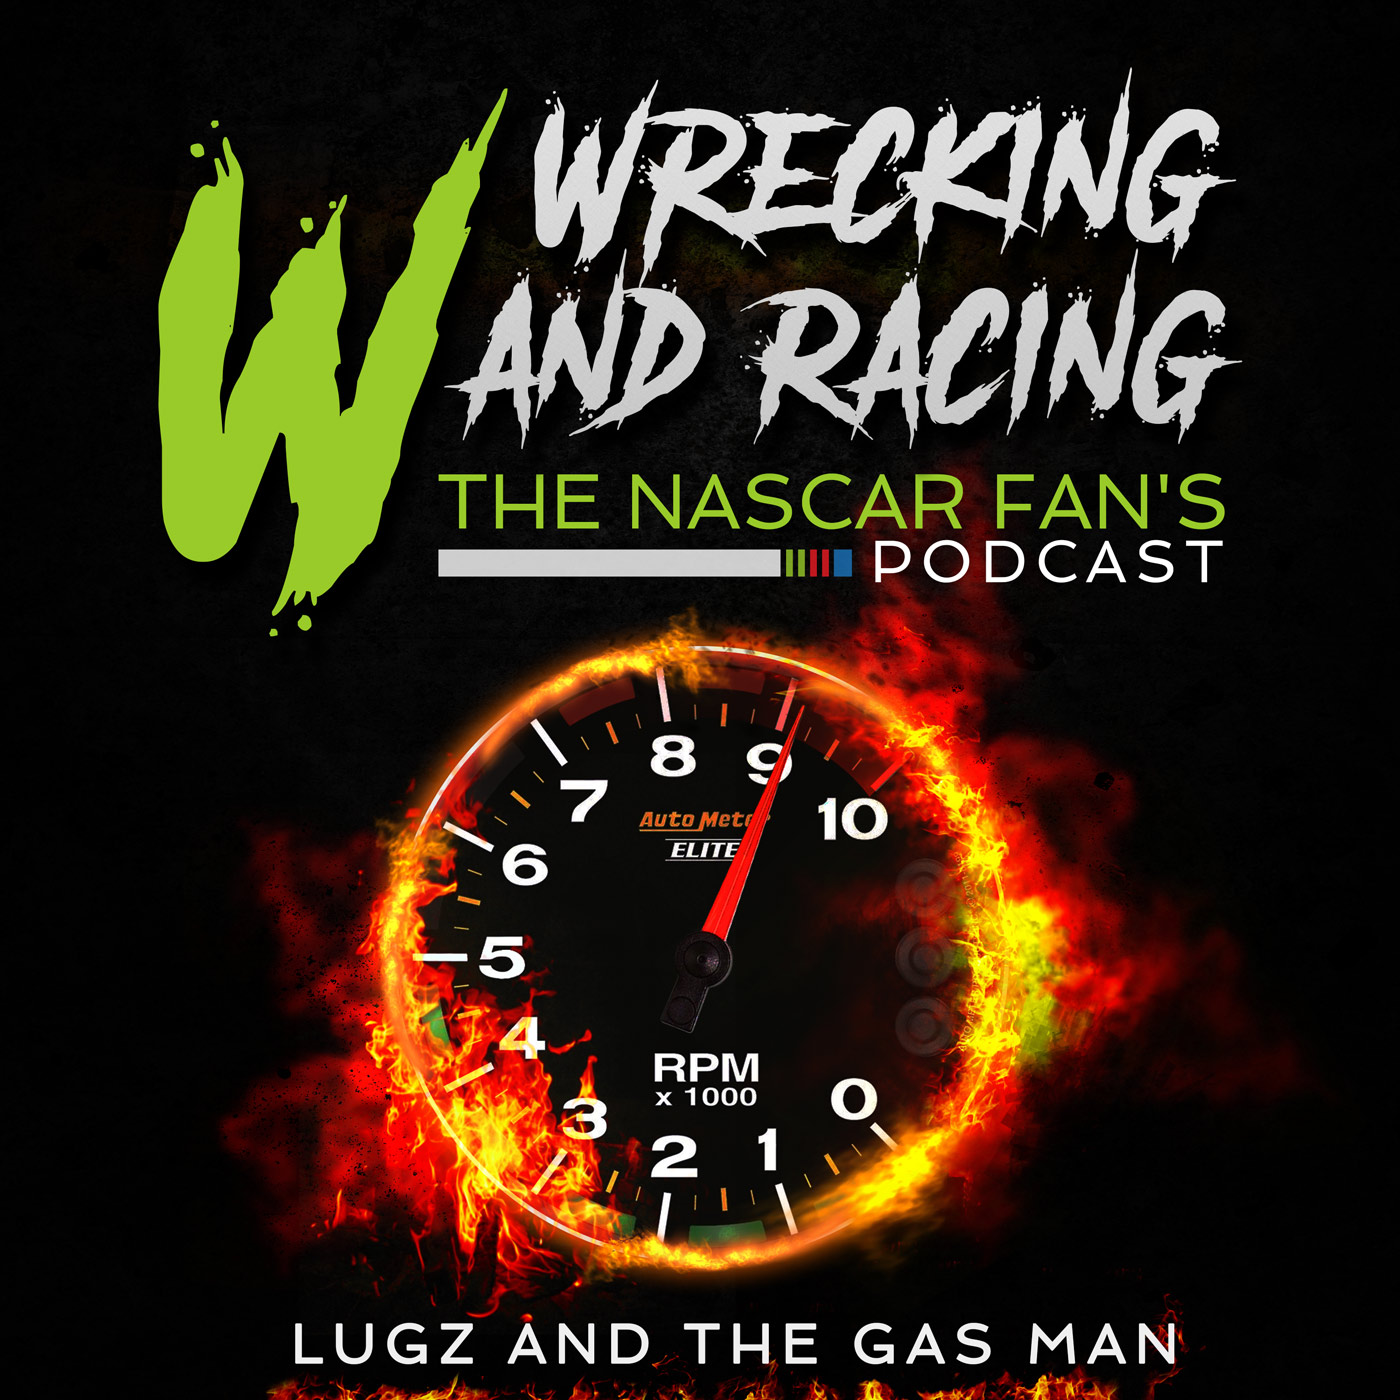 Wrecking and Racing